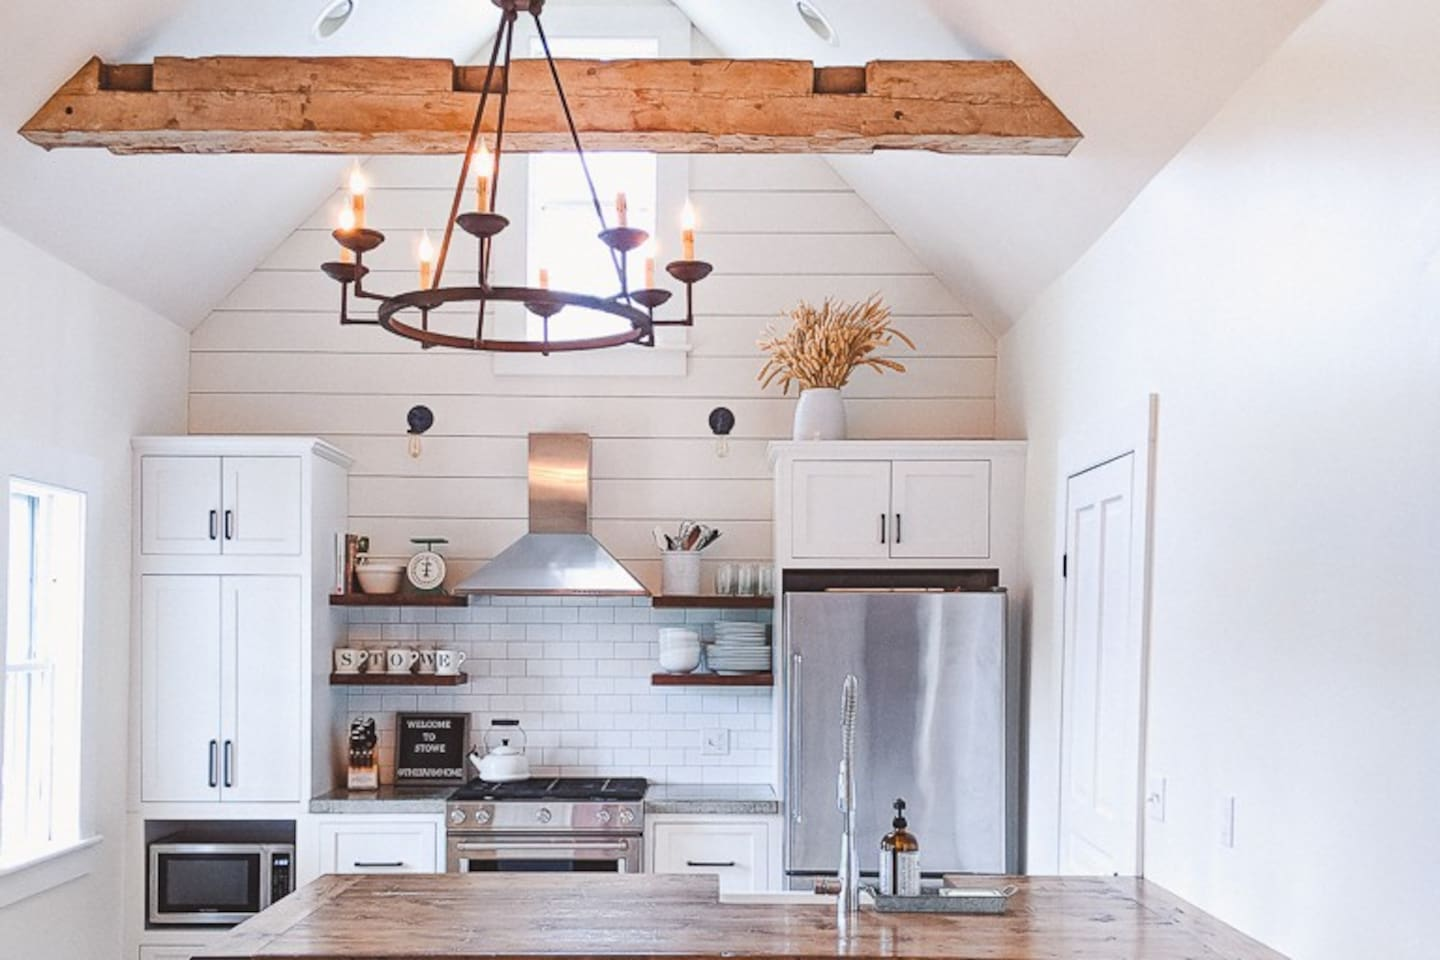 Newly renovated kitchen - concrete countertops, farmsink, hand-hewn beams, and reclaimed wood peninsula - make for a great hang-out spot for families & friends.